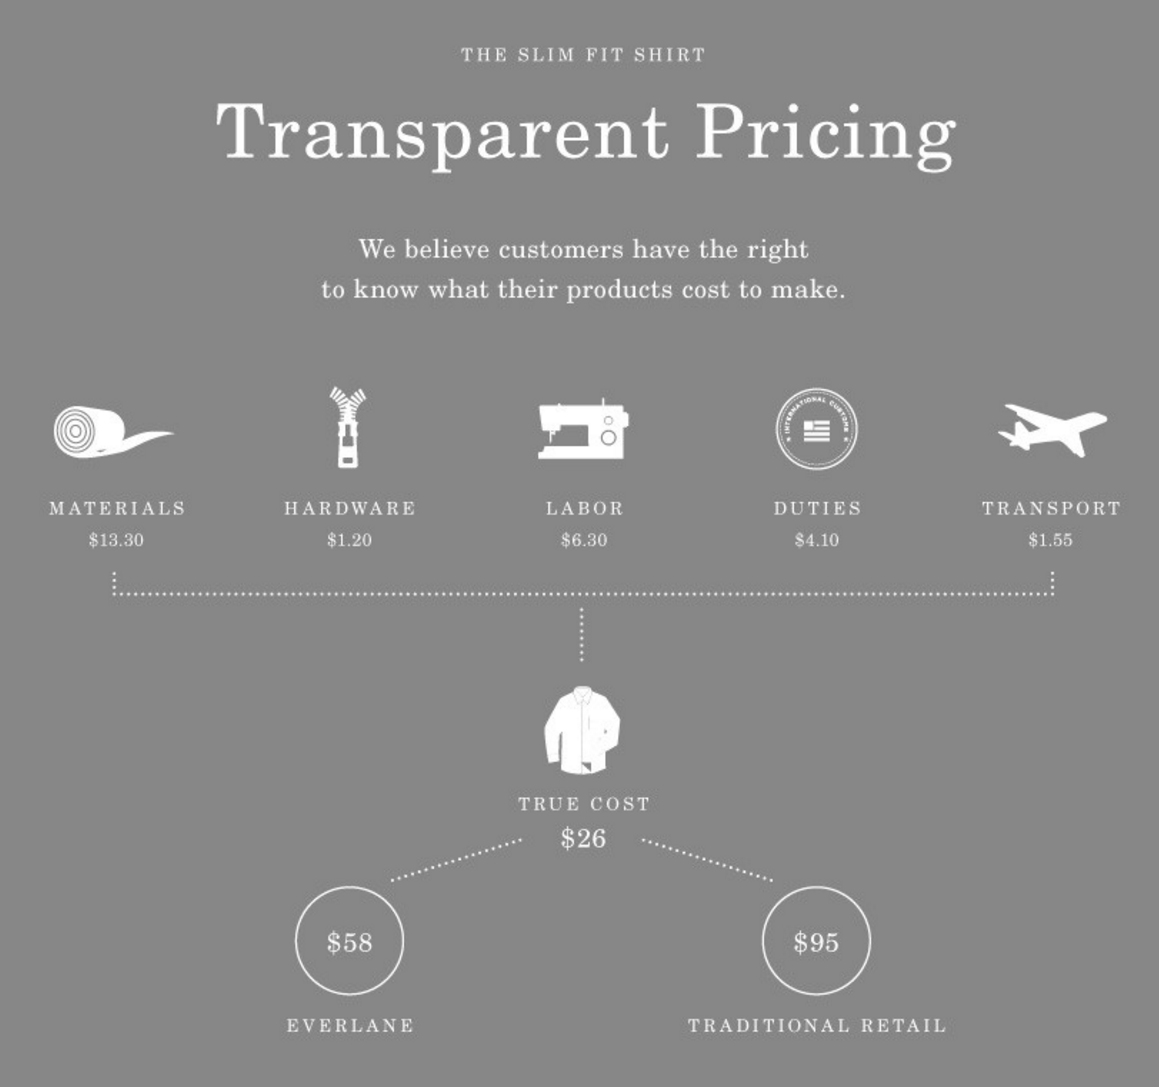 Everlane's transparent pricing